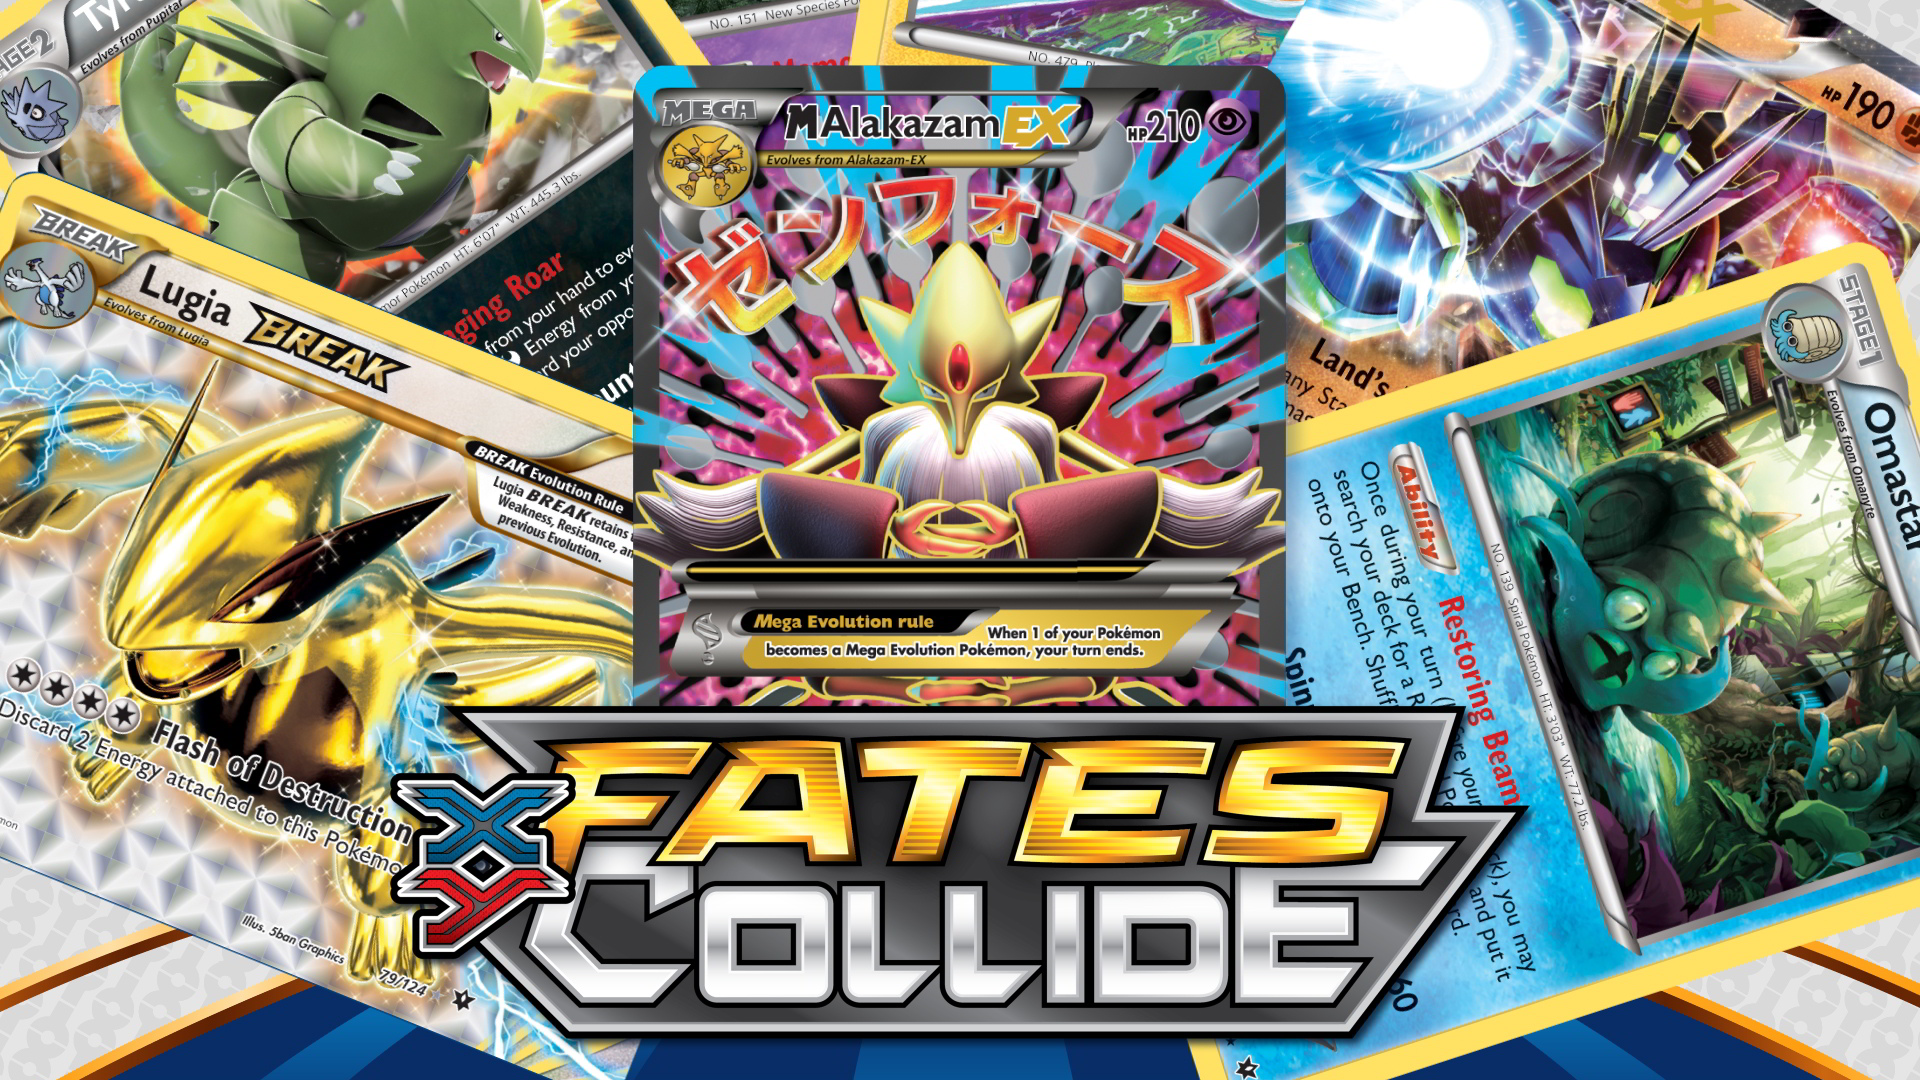 Xy Series Xyfates Collide Trading Card Game Pokemon